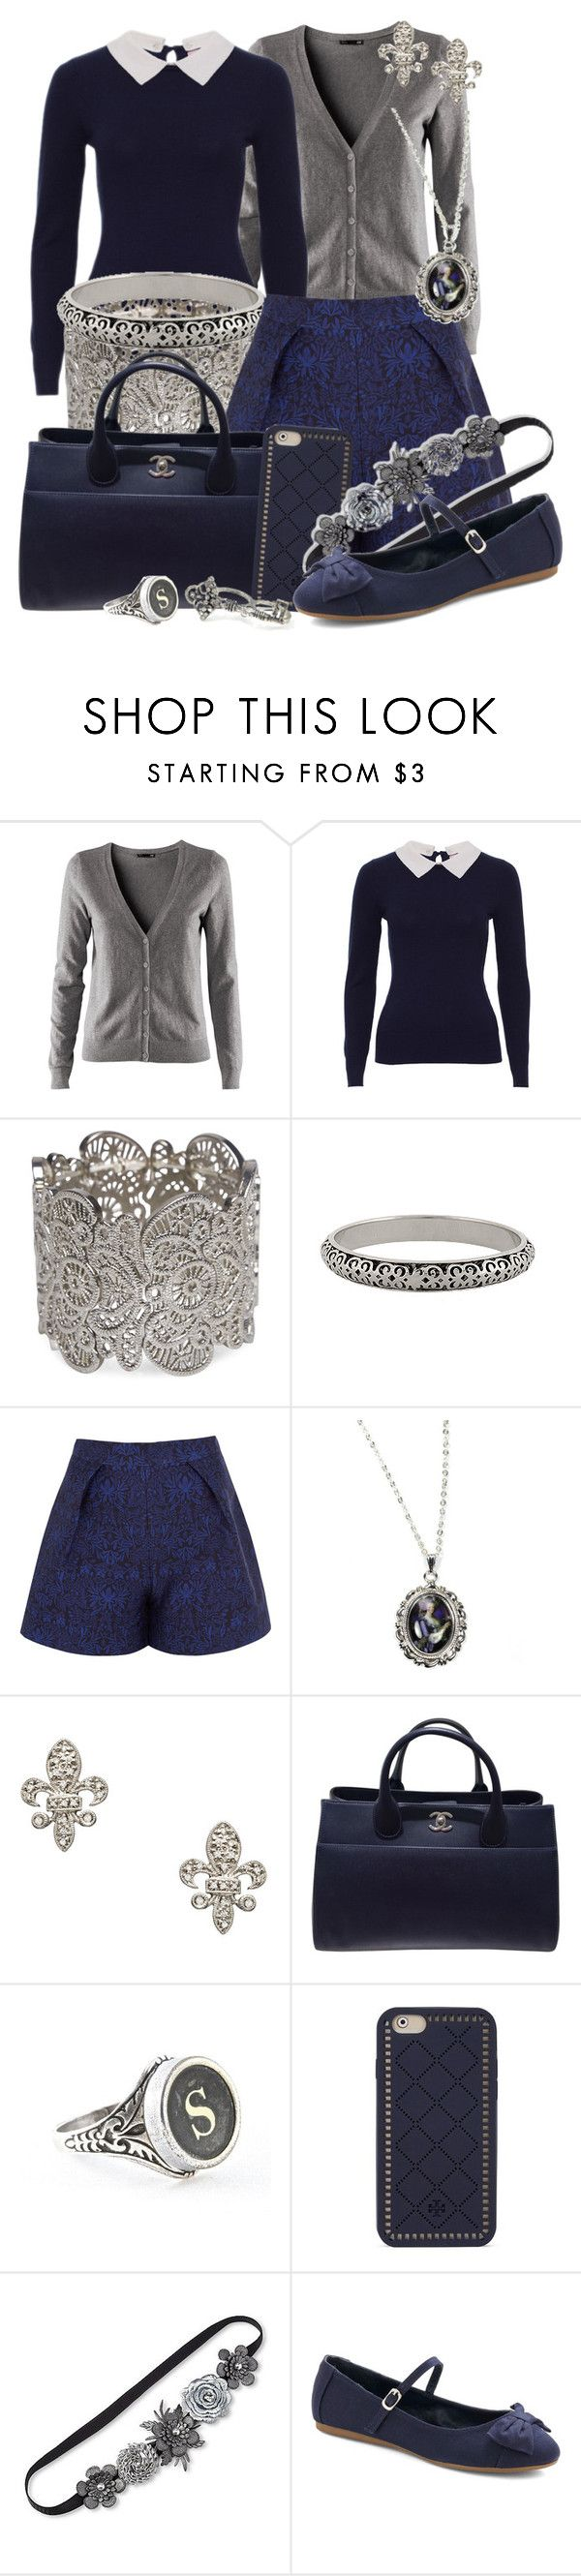 """""""Treasure in the Royal Tower"""" by detectiveworkisalwaysinstyle ❤ liked on Polyvore featuring H&M, Wet Seal, Forever 21, Mother of Pearl, Hoolala, KC Designs, Chanel, Tory Burch and Fantasia"""